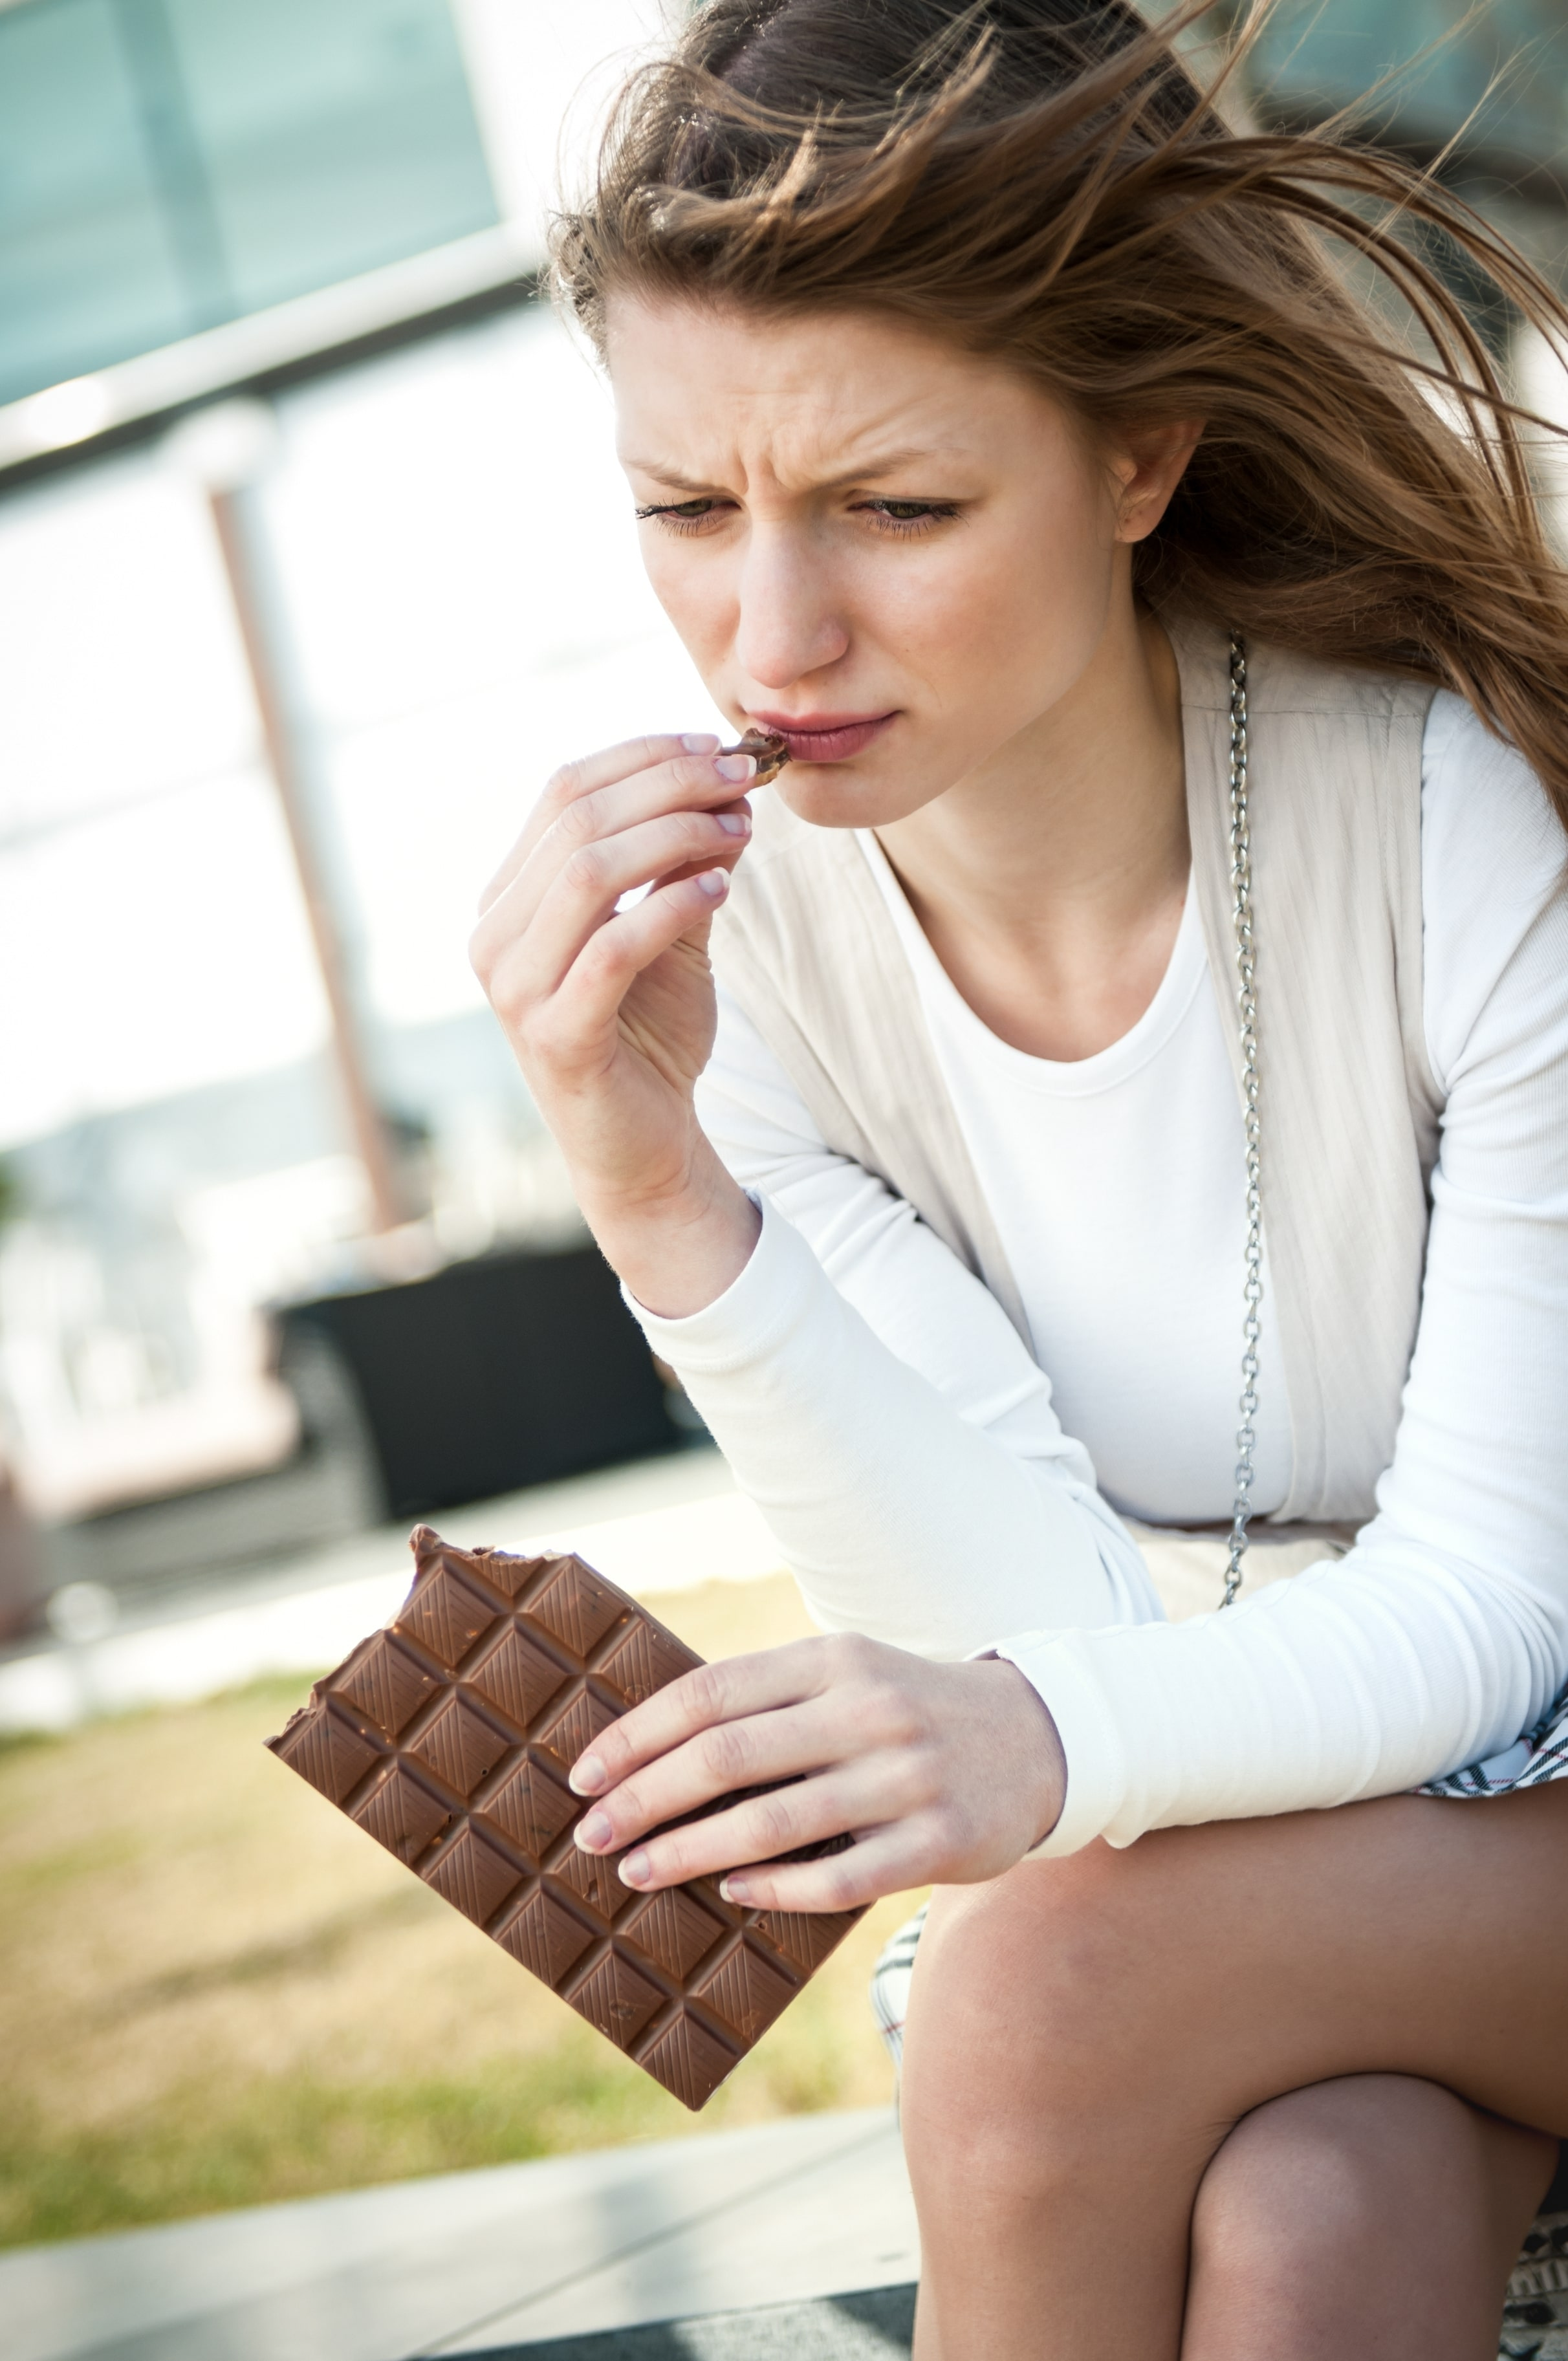 Emotional Eating: Patterns, Triggers, Causes, Treatment